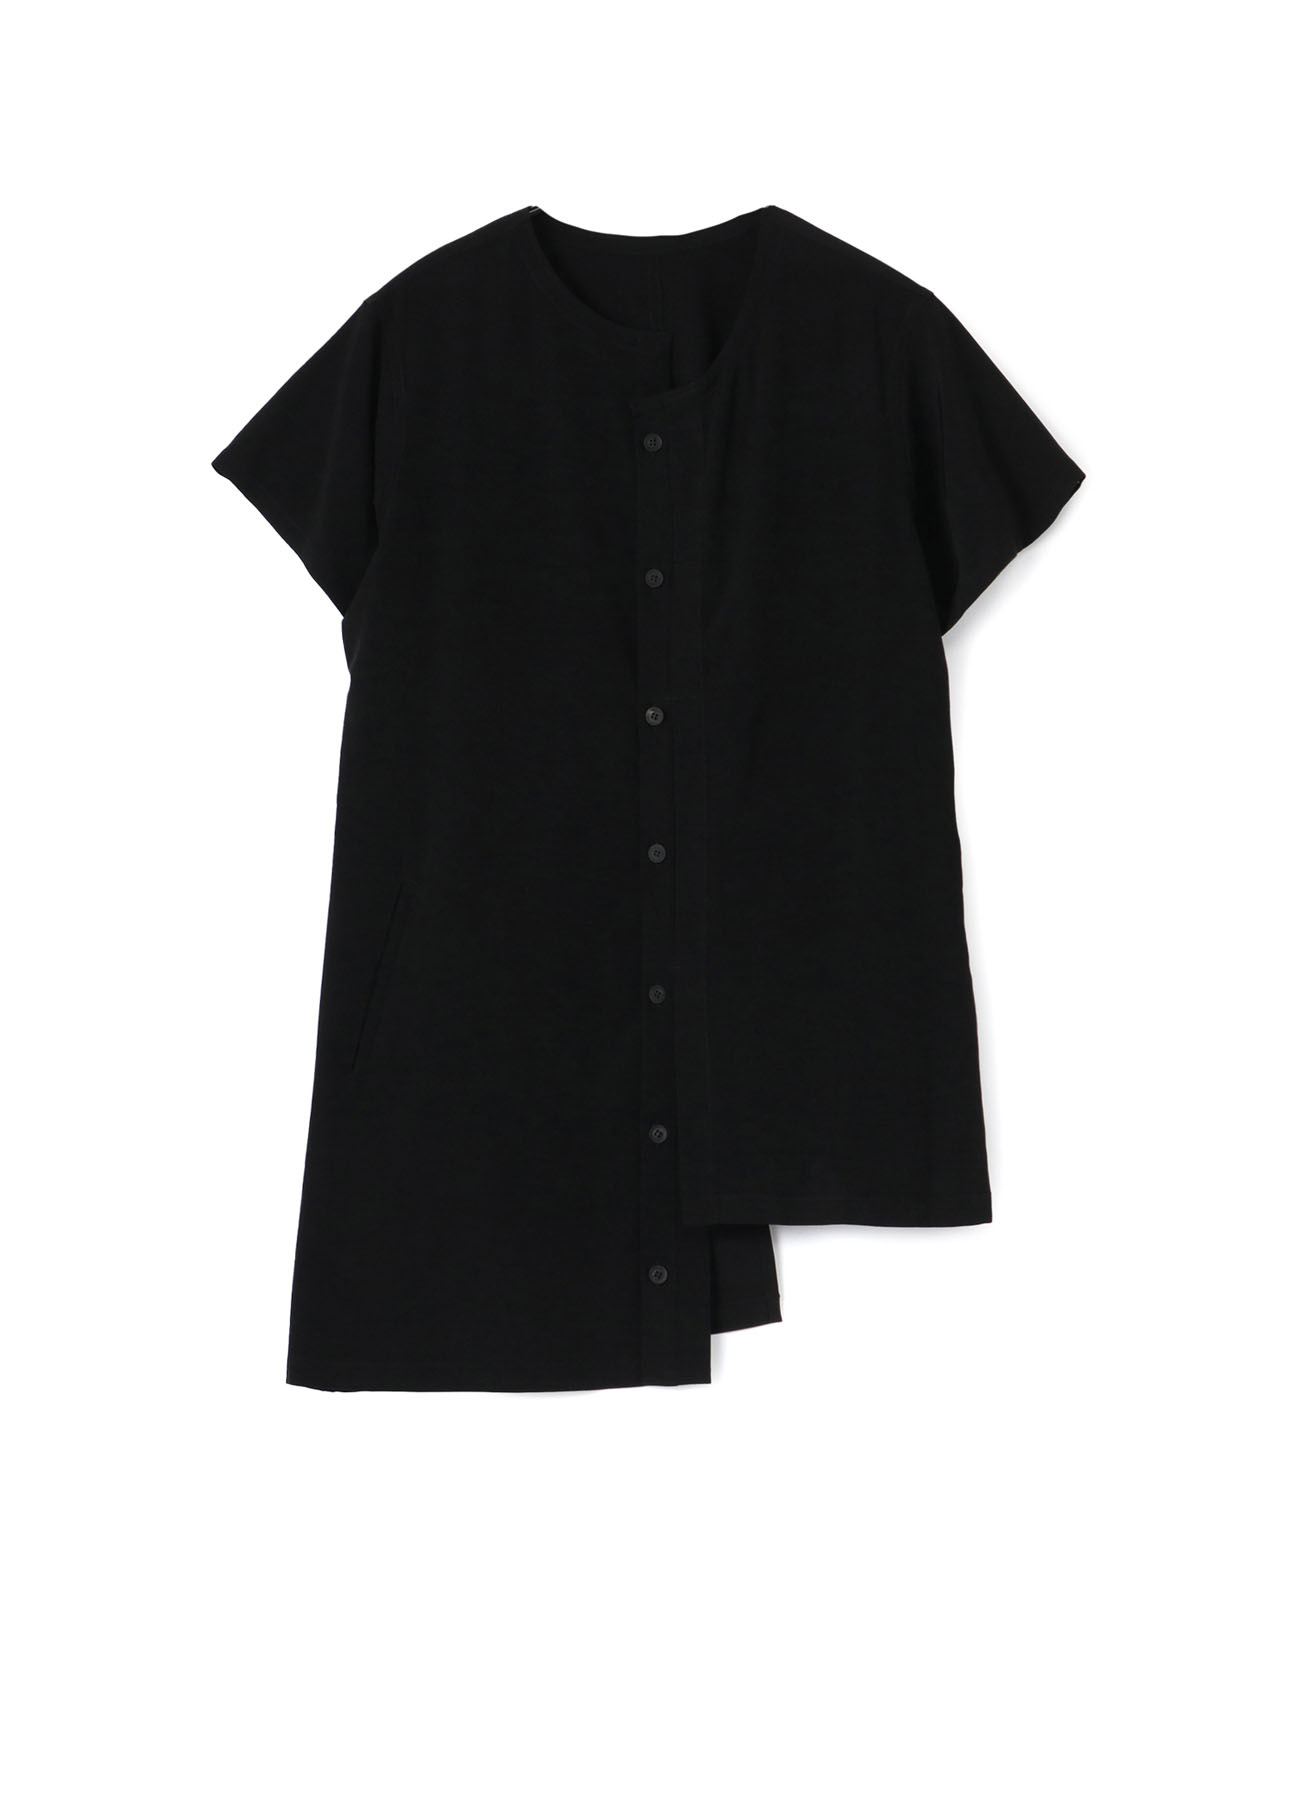 TA/PE CREPE DE CHINE B/COLLAR UNEVEN SHORT SLEEVE B